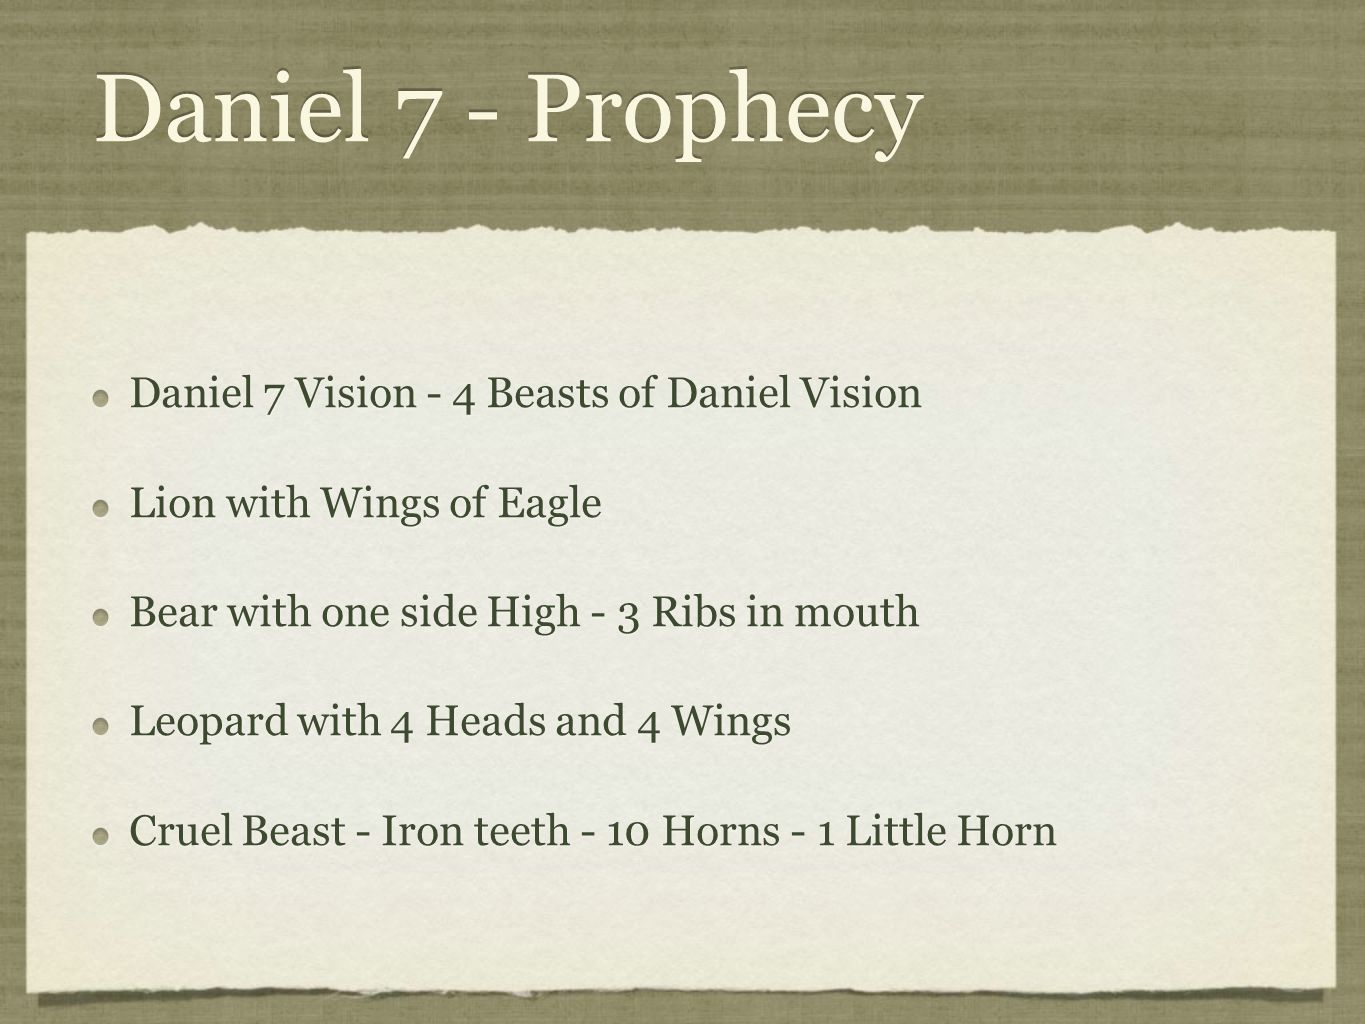 Daniel 7 - Prophecy Daniel 7 Vision - 4 Beasts of Daniel Vision Lion with Wings of Eagle Bear with one side High - 3 Ribs in mouth Leopard with 4 Head